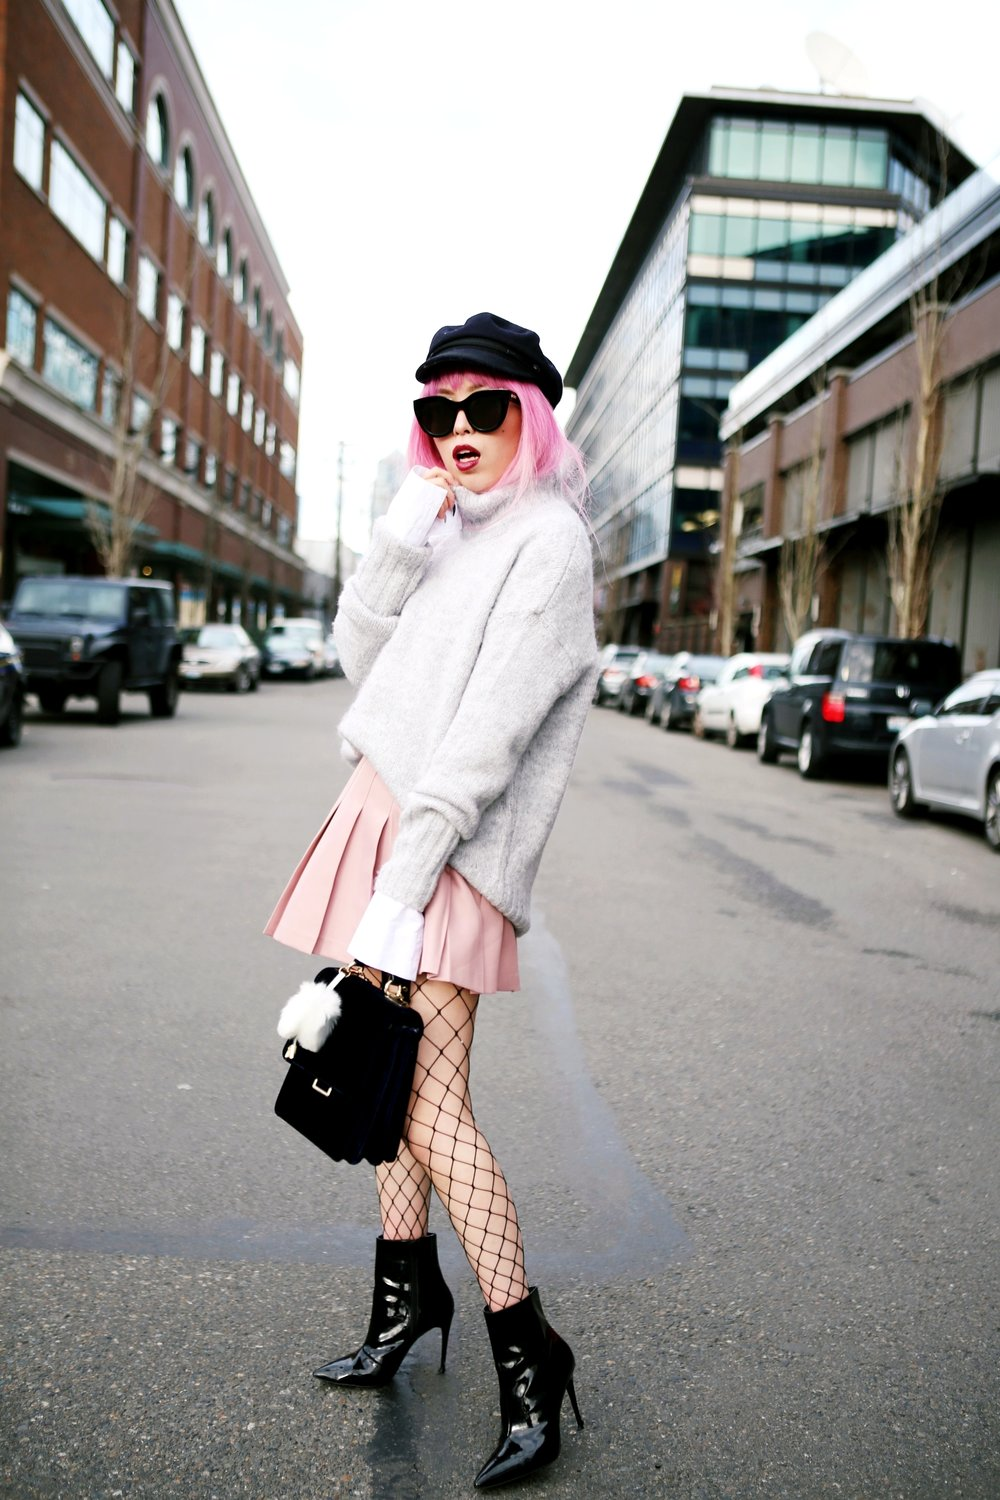 Isabel Marant News Boy Hat-H&M Gray Turtleneck Sweater-H&M Wide cuff Cotton Shirt-Forever 21 Pleated Mini Skirt-Boohoo Wide Fishnet Tights-ZARA Velvet Bag-ALDO Patent Booties-Le Specs Air Heart Sunglasses-Milani Black Cherry Lipstick-Aikas Love Closet-Seattle Style Lifestyle Blogger-japanese-pink hair 15